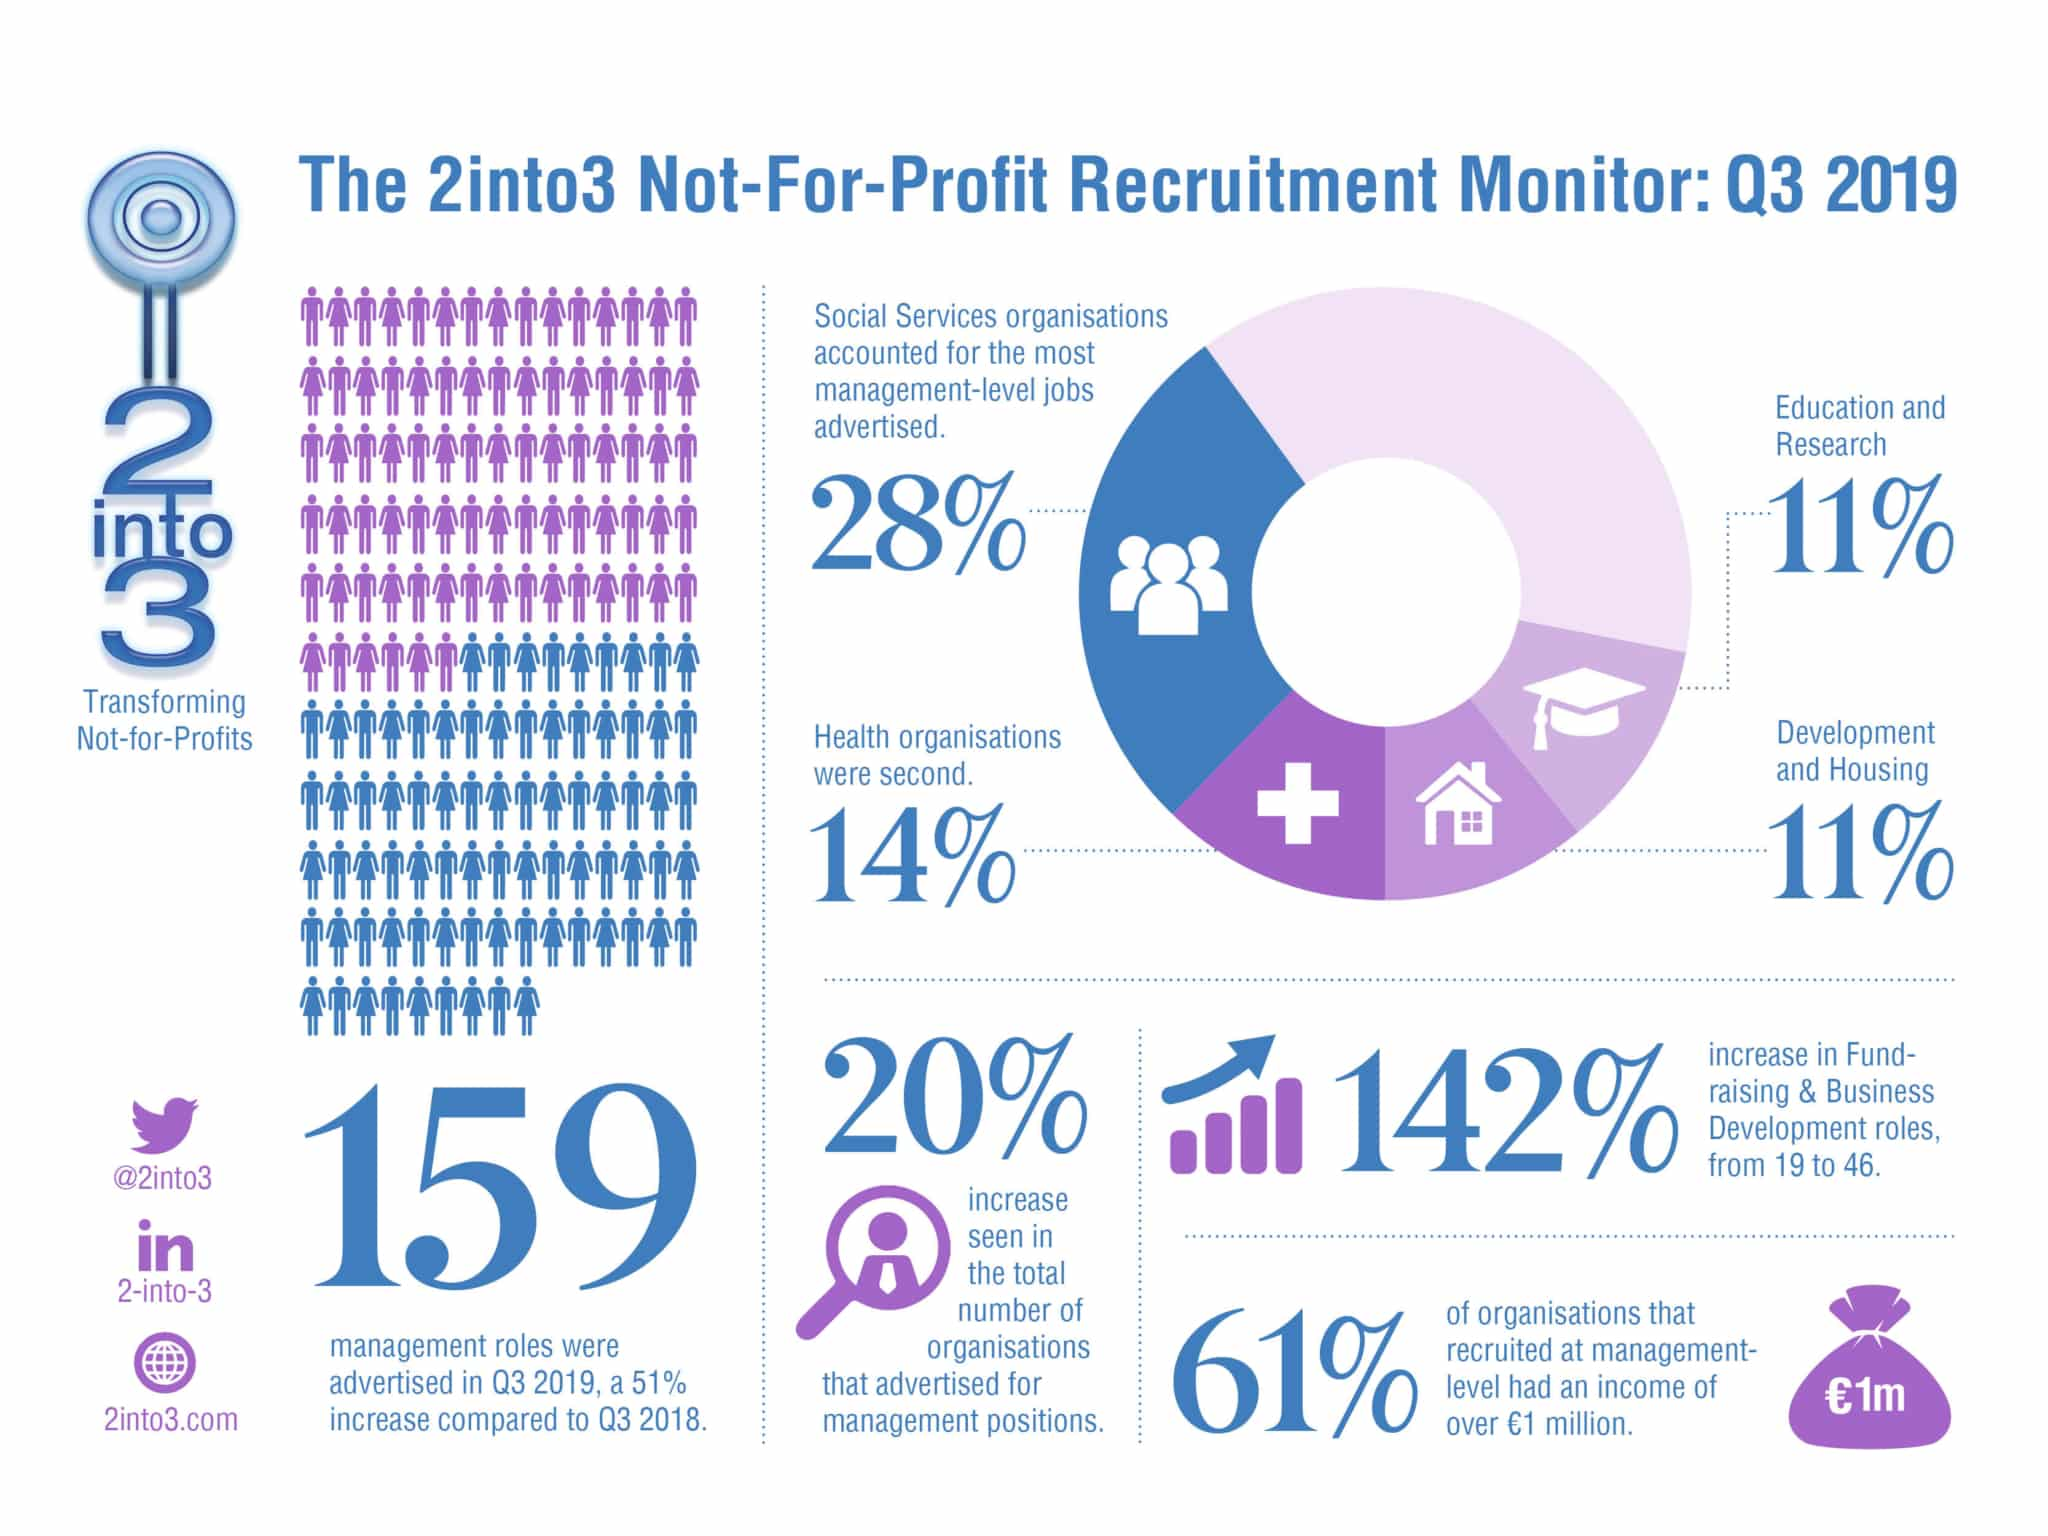 2into3 Recruitment Monitor Q3 2019